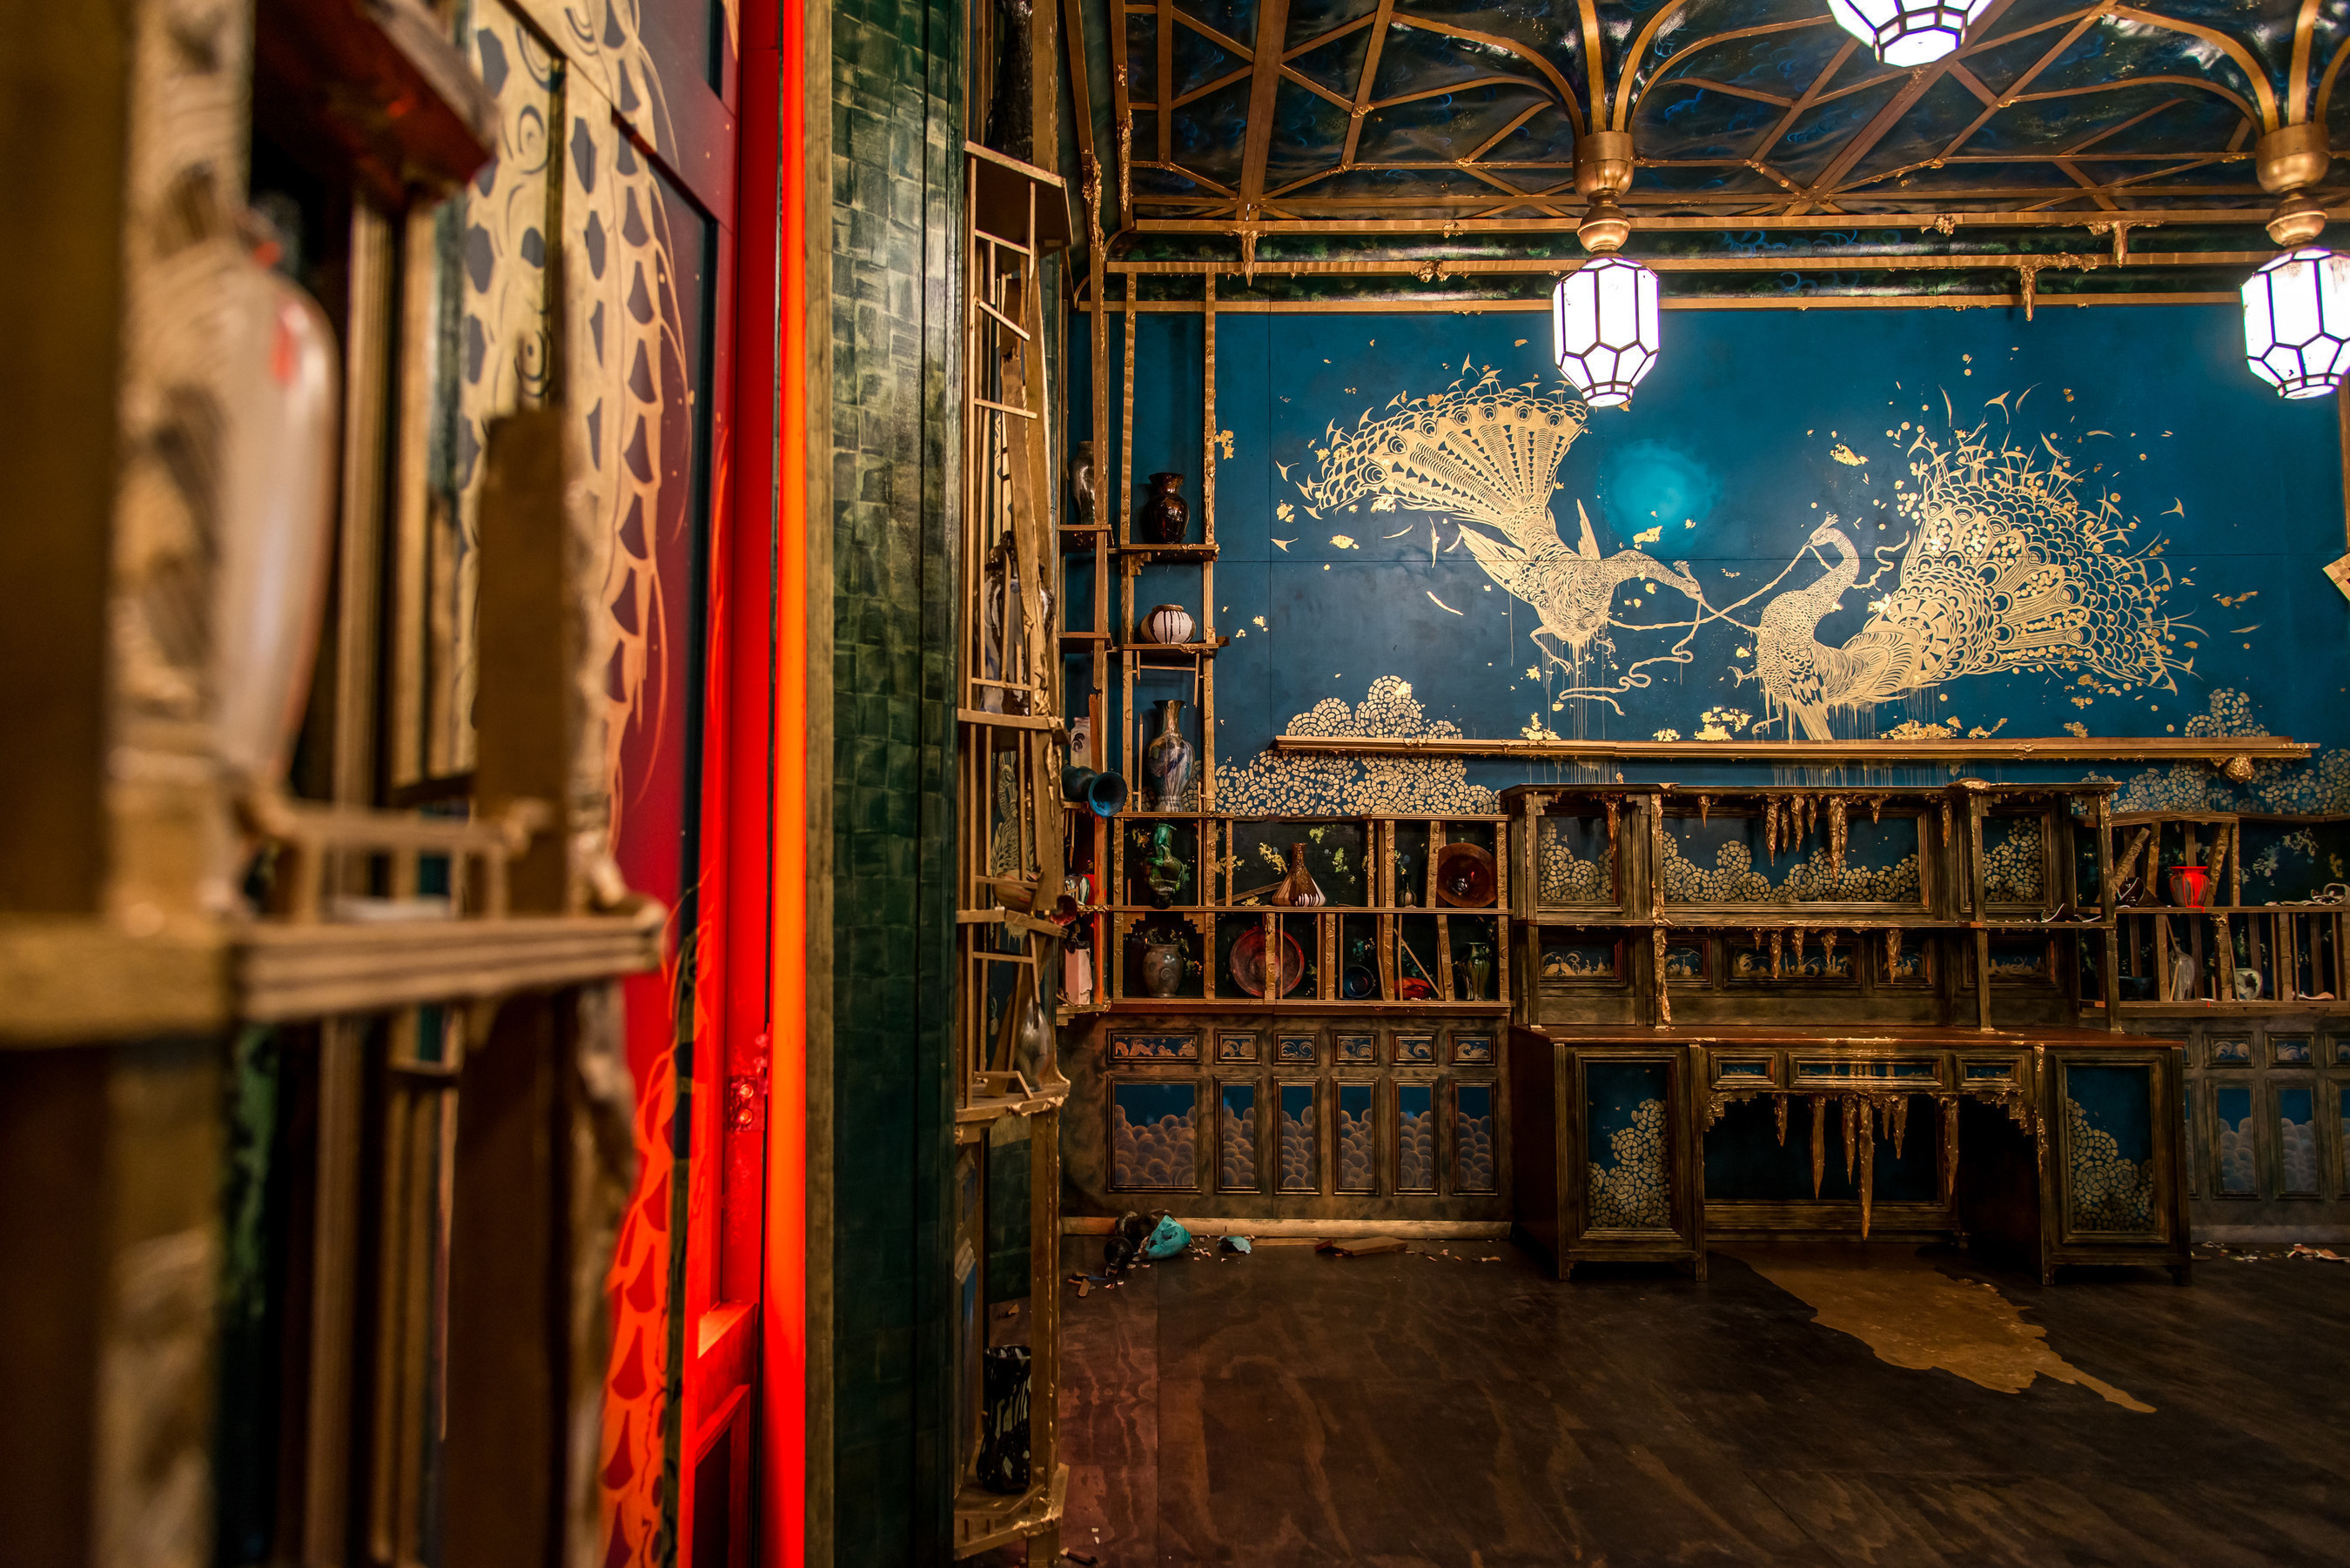 Artist Darren Waterston Recreates Iconic Peacock Room as a Magnificent Ruin at Smithsonian's Sackler Gallery